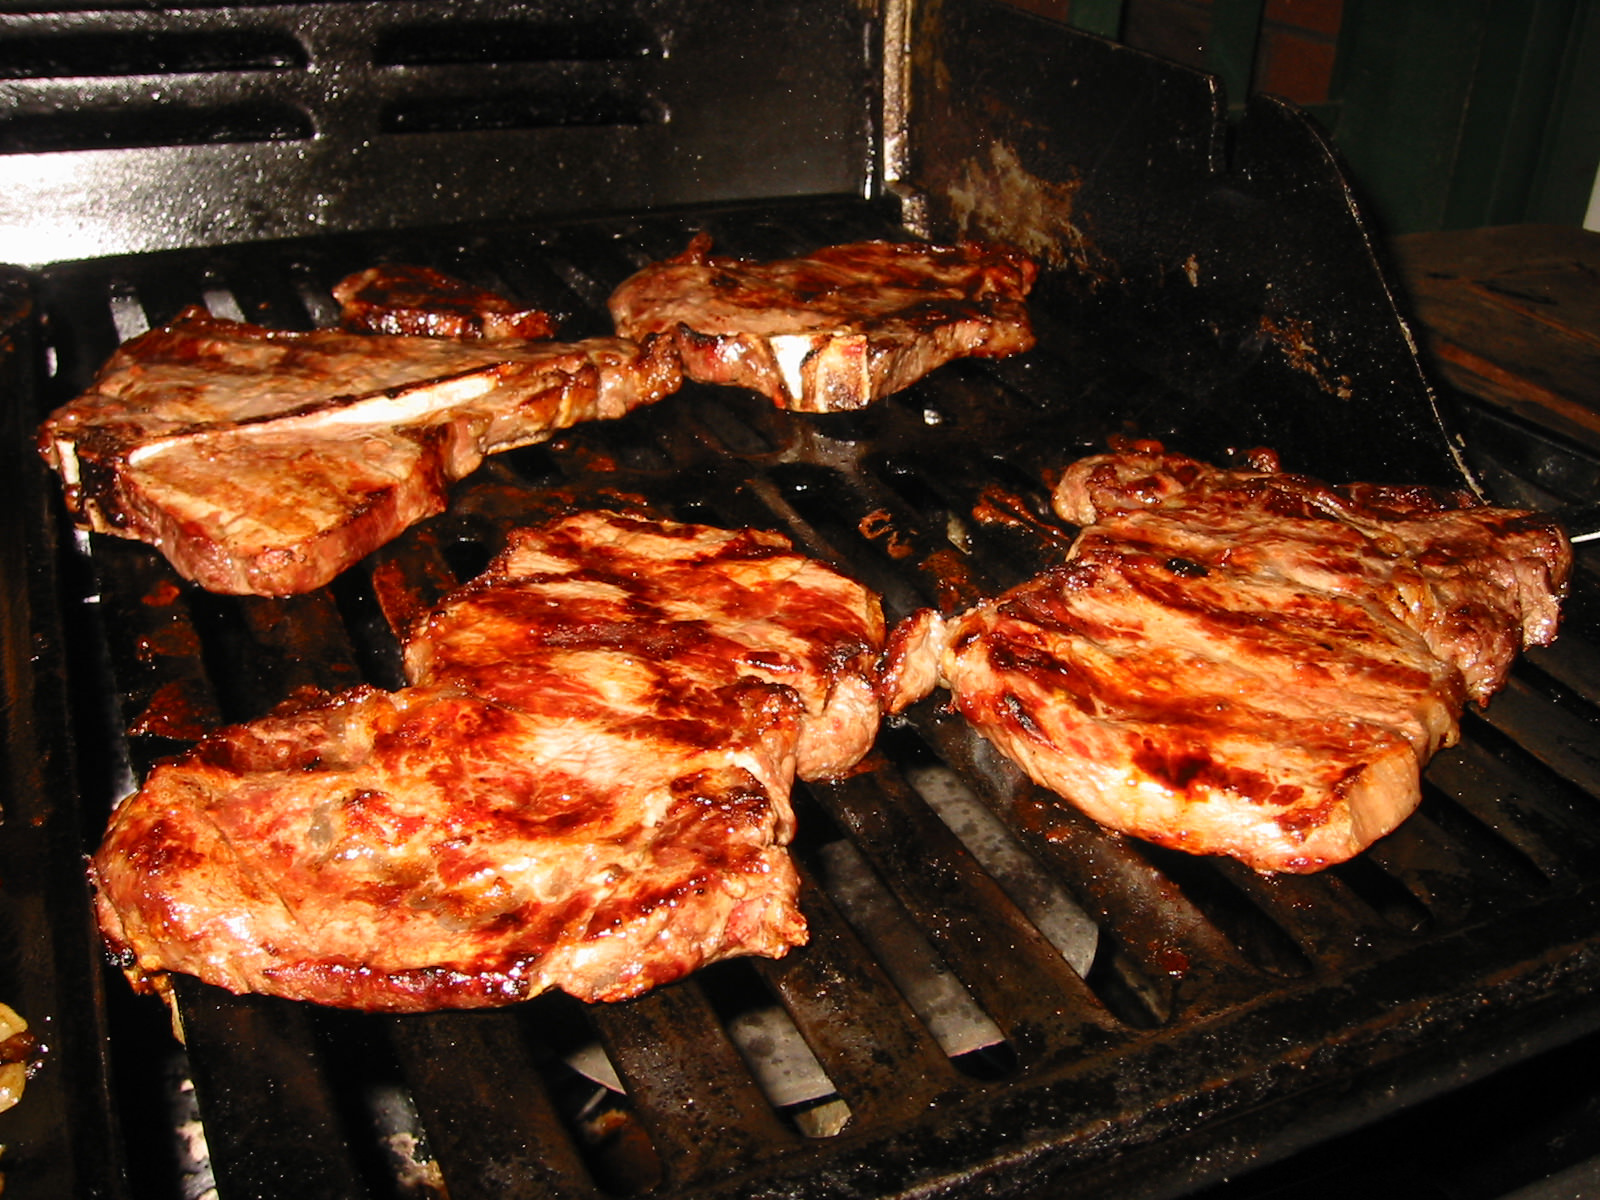 Steaks - with flash